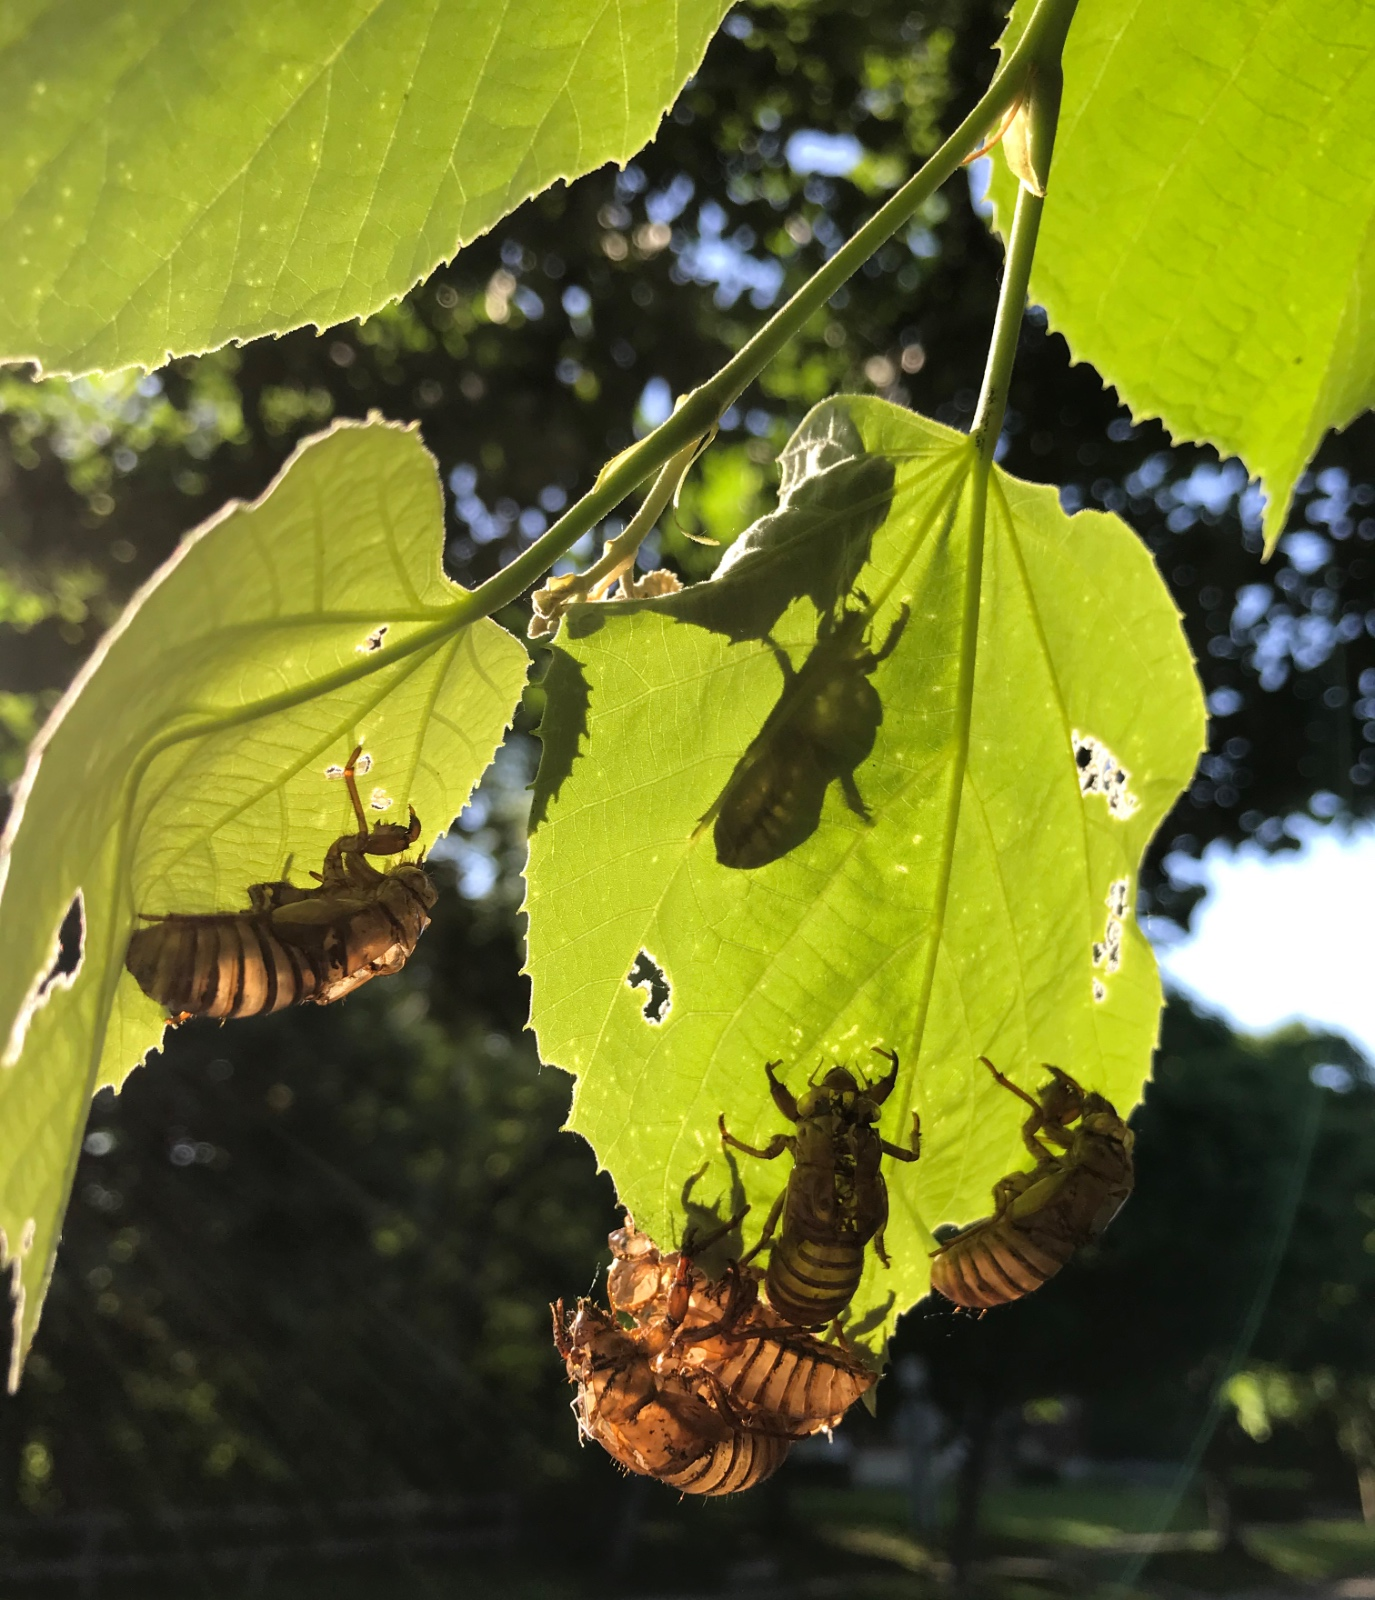 Eclosion Explosion (Cicada Nymph Skins)